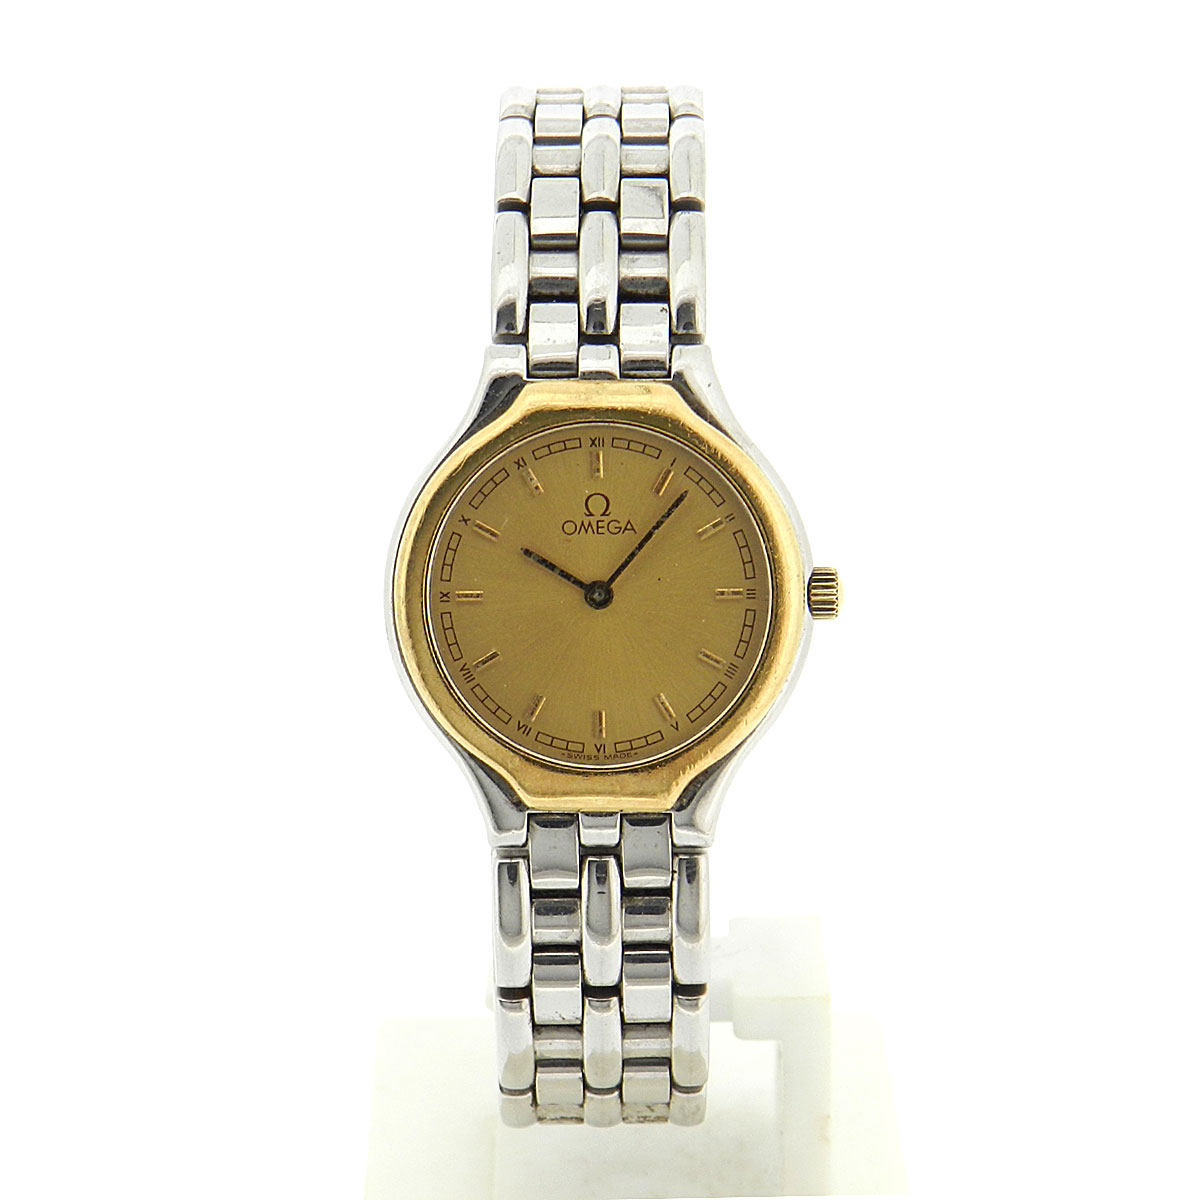 OMEGA symbol watch SS women